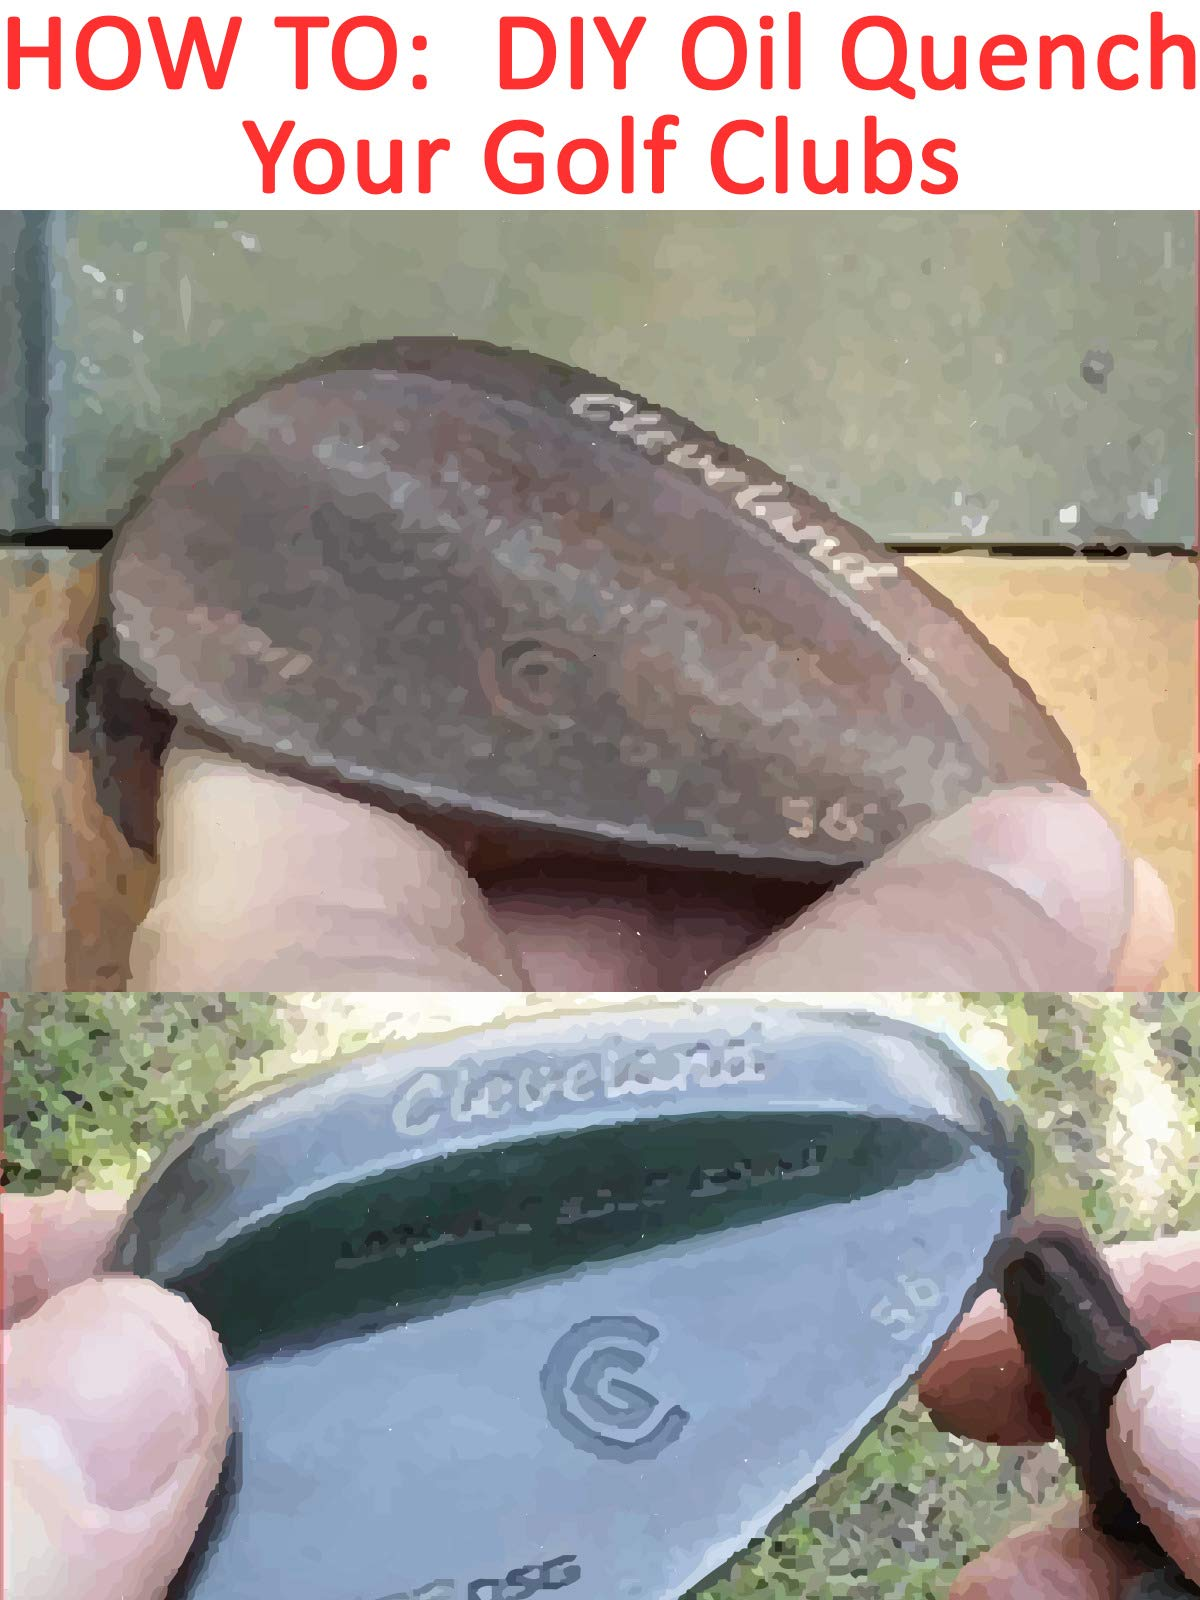 How To DIY Oil Quench Your Golf Clubs